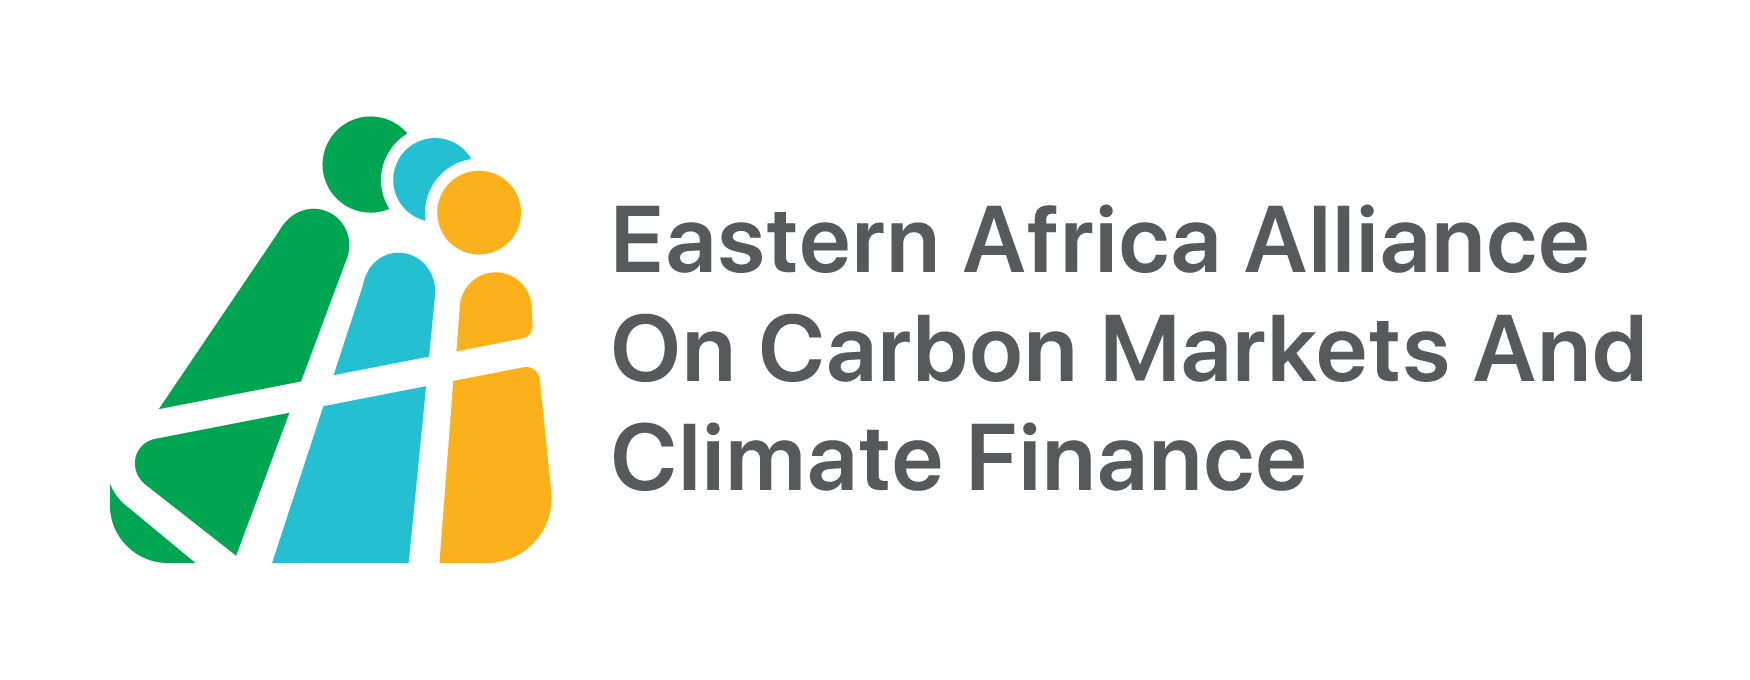 Eastern Africa Alliance on Carbon Markets and Climate Finance